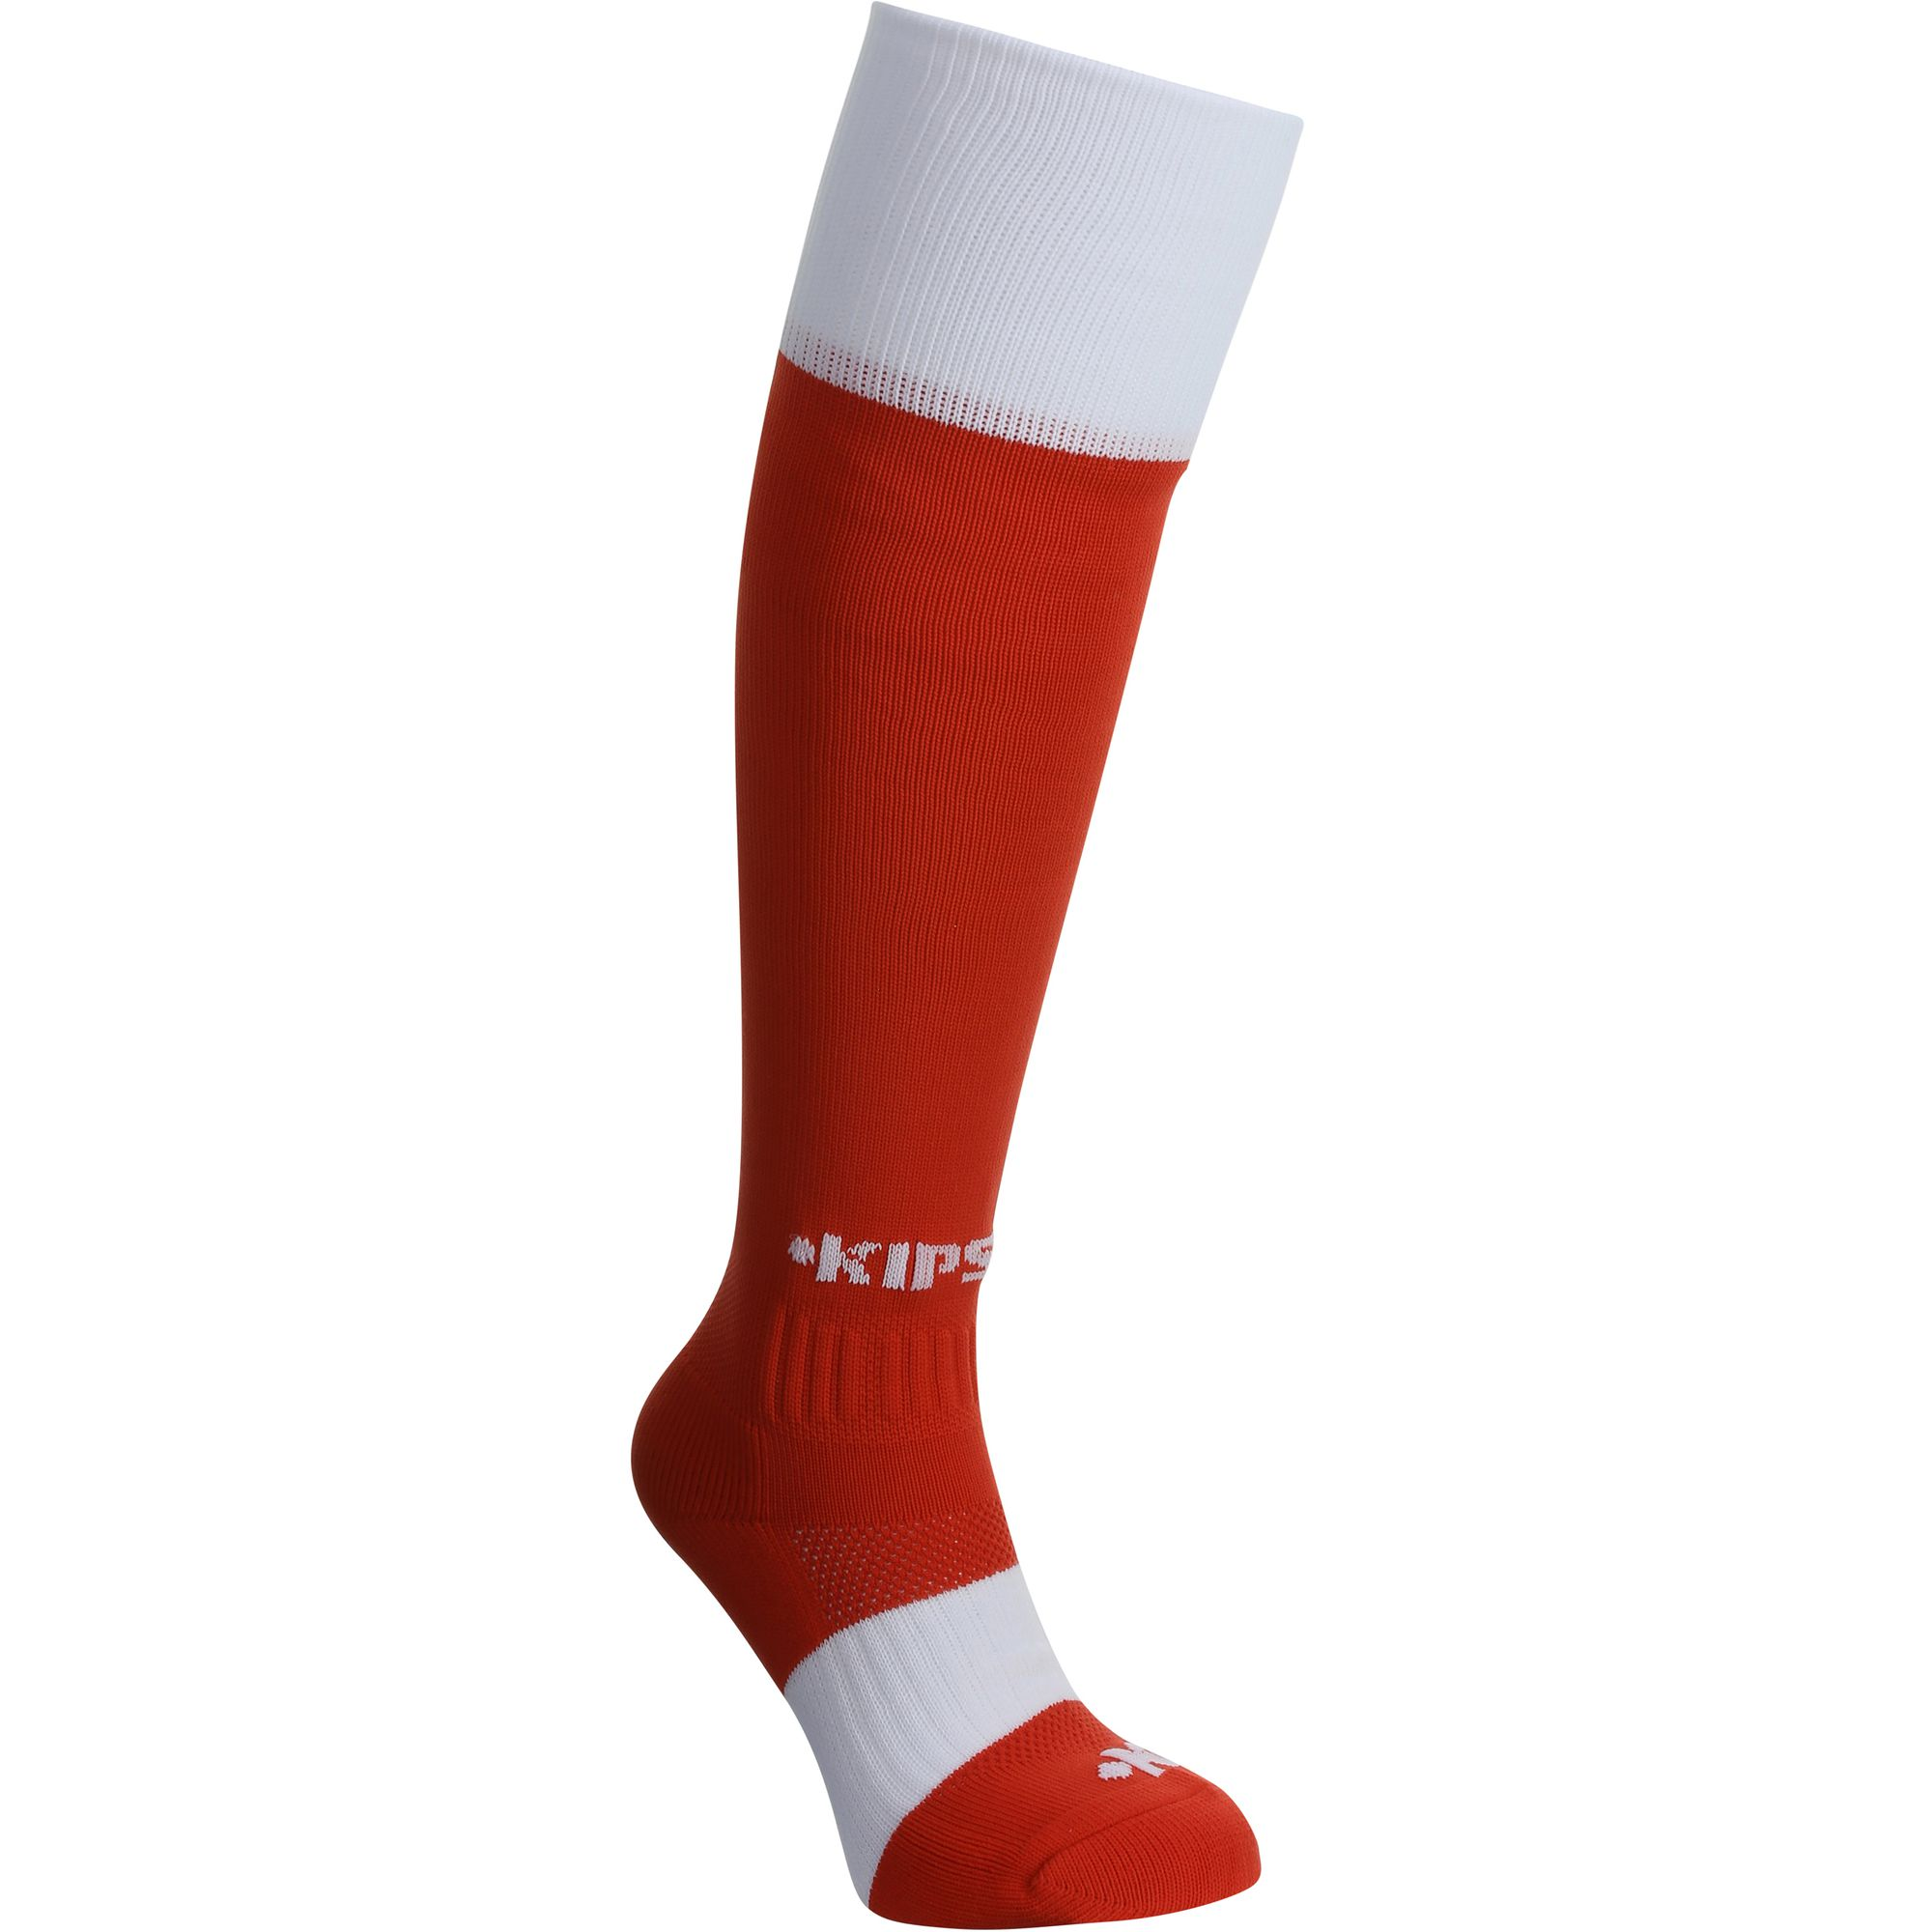 Chaussettes hautes rugby enfant Full H 500 rouge